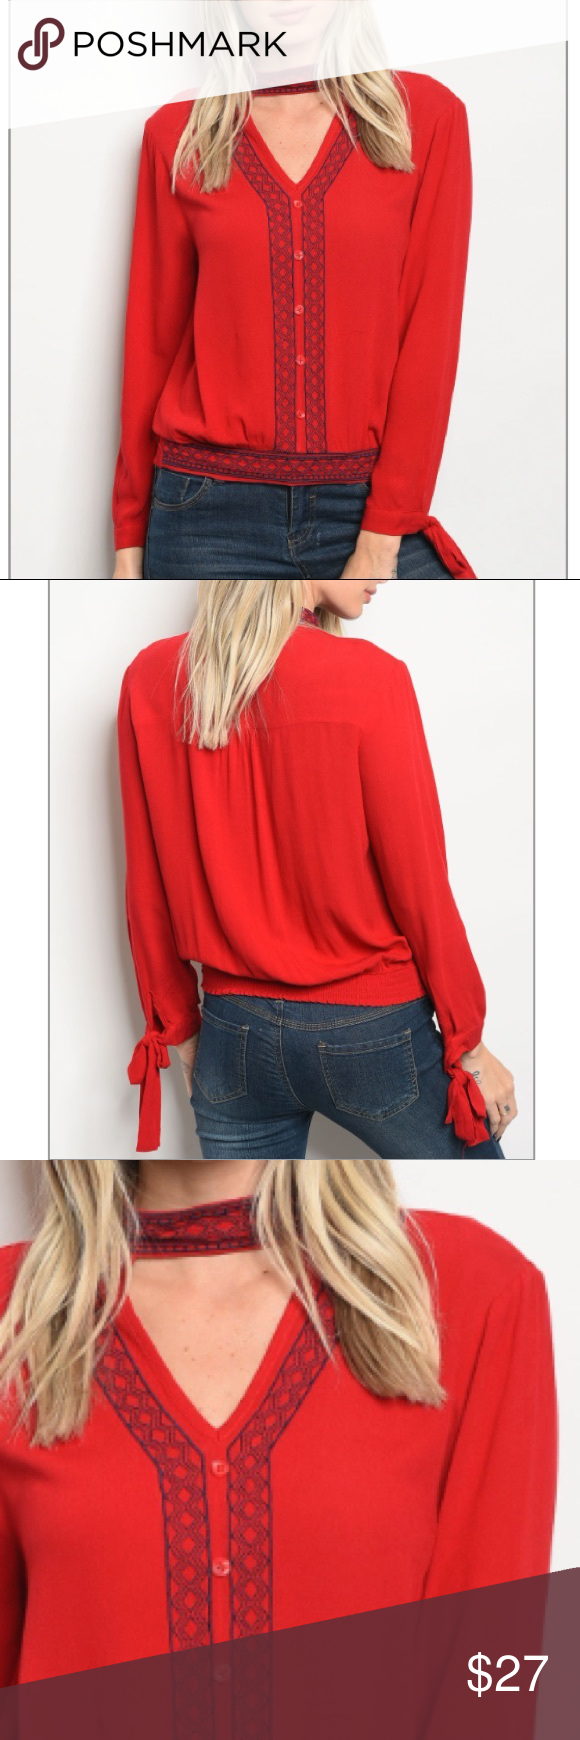 caa0e3382dc789 Red Choker Blouses | Toffee Art